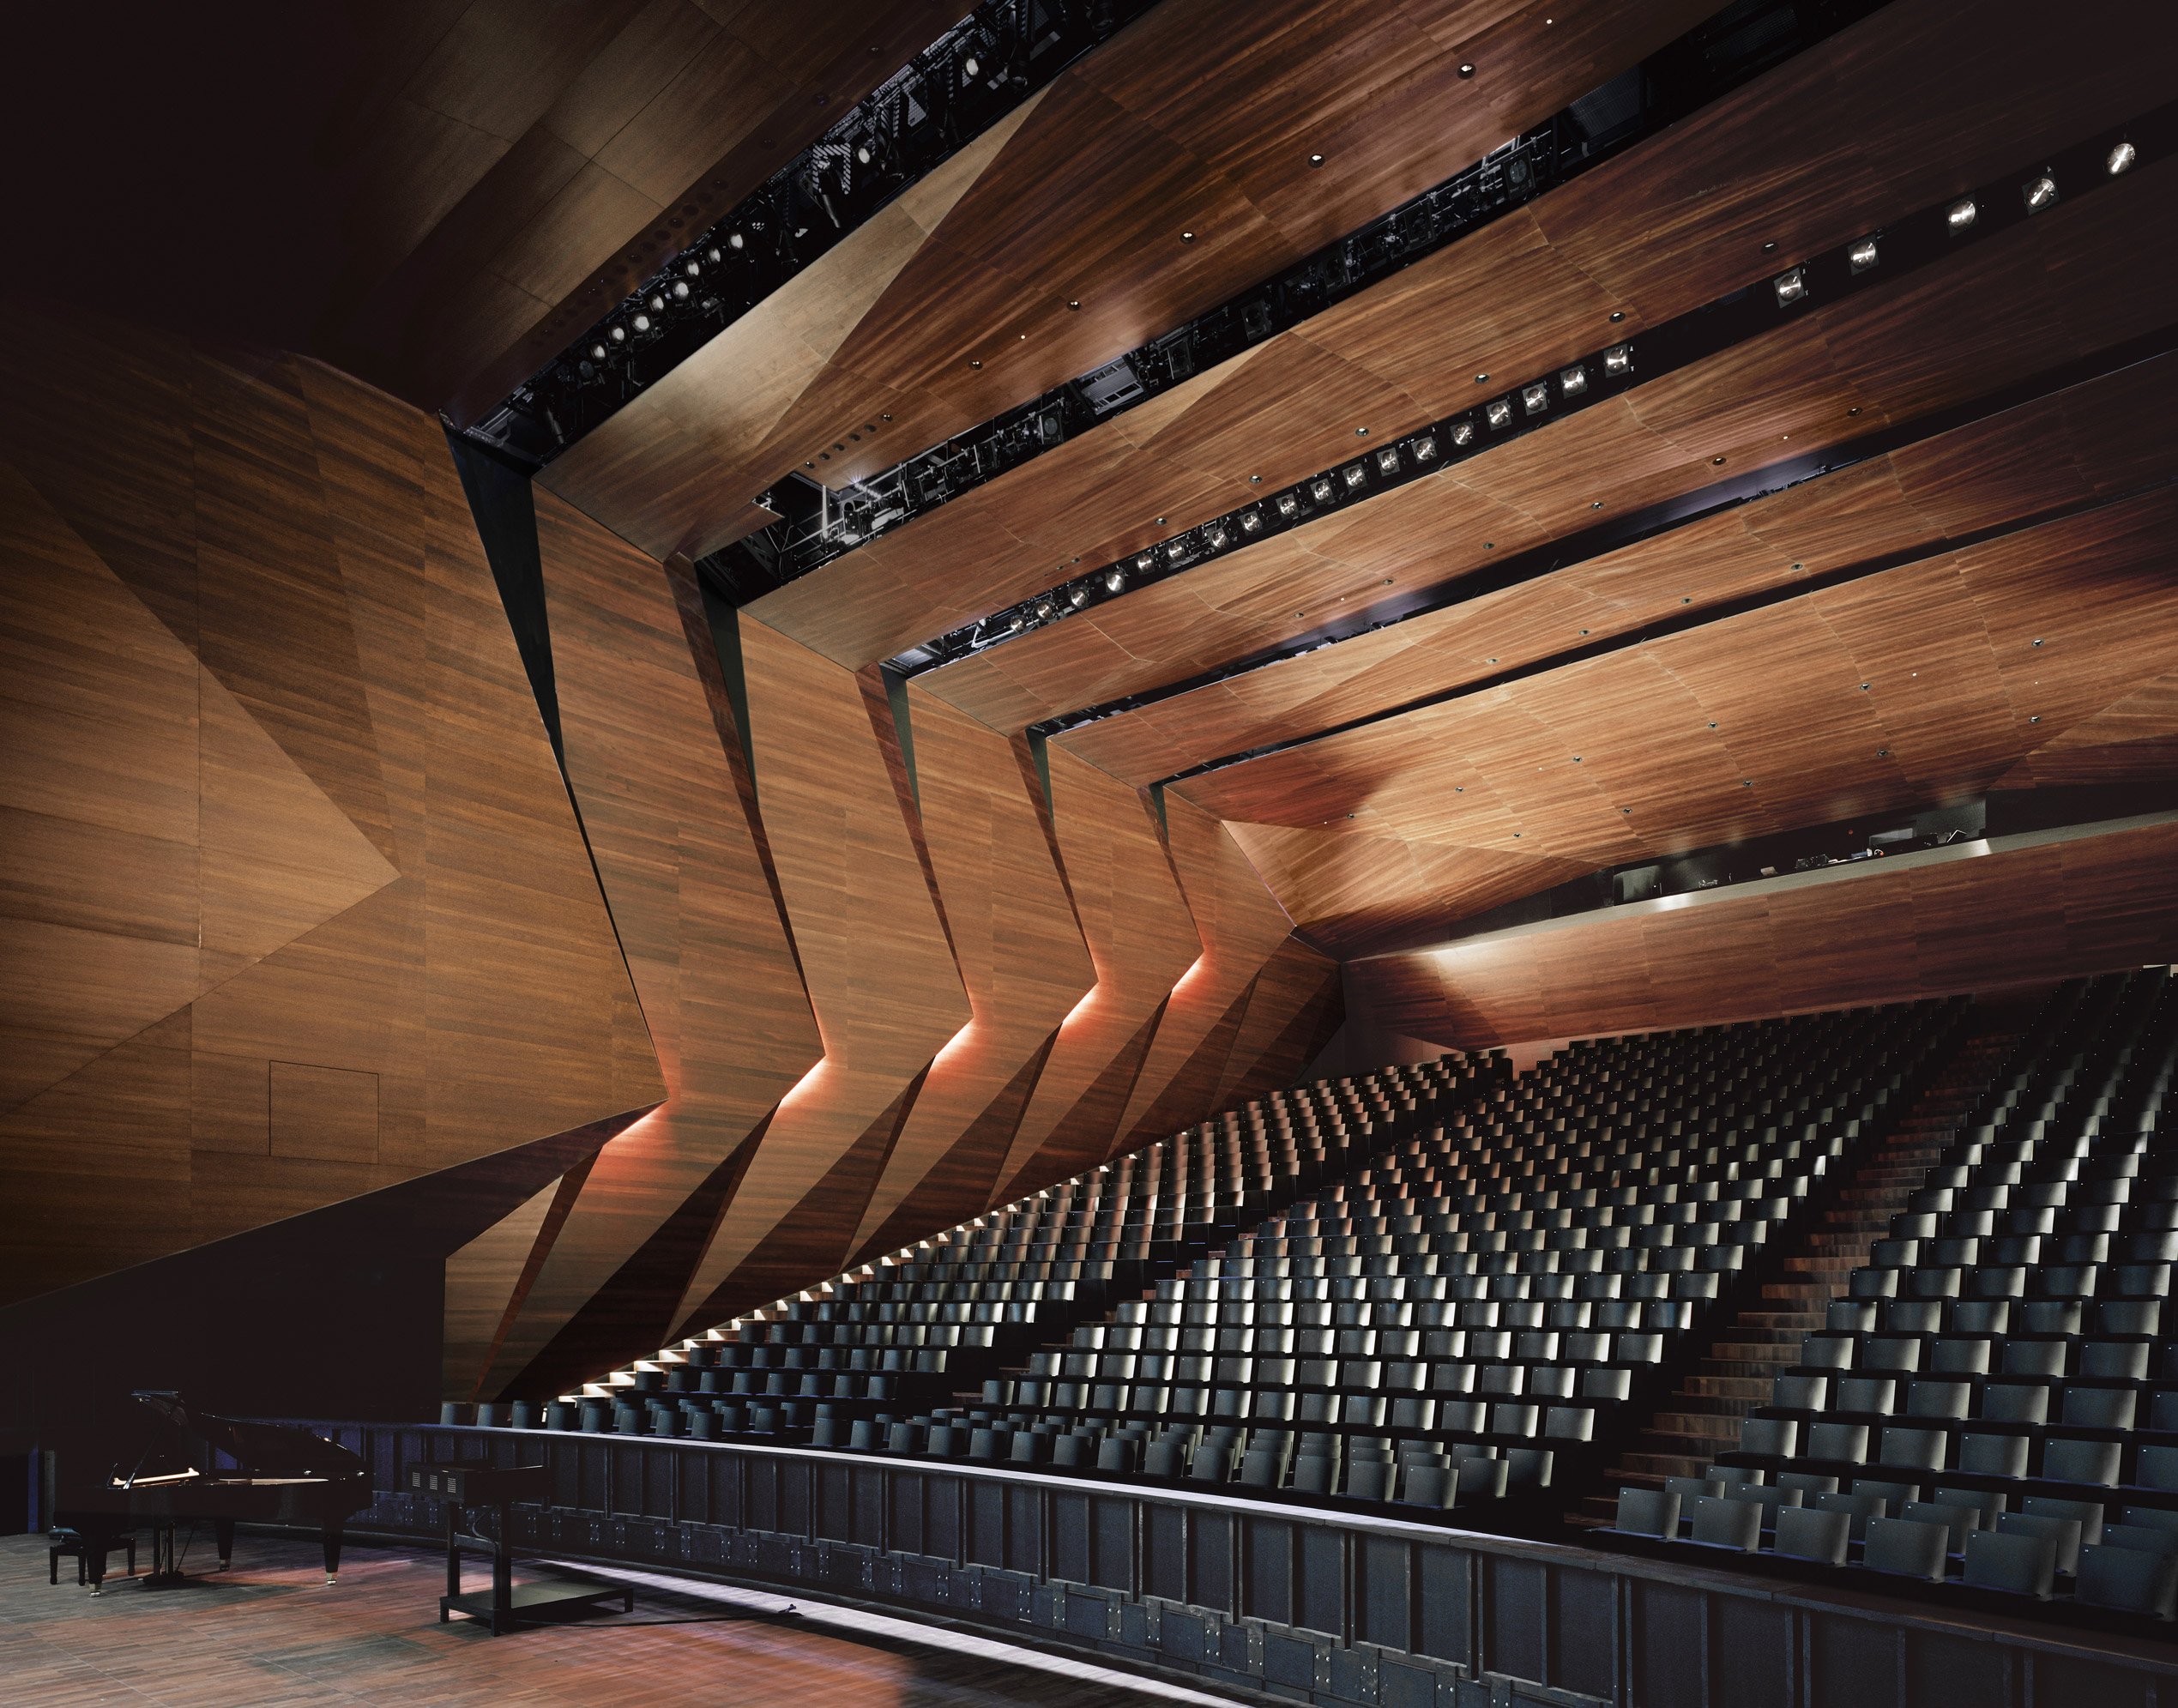 The new festival hall in erl austria by delugan meissl for Architecture wood